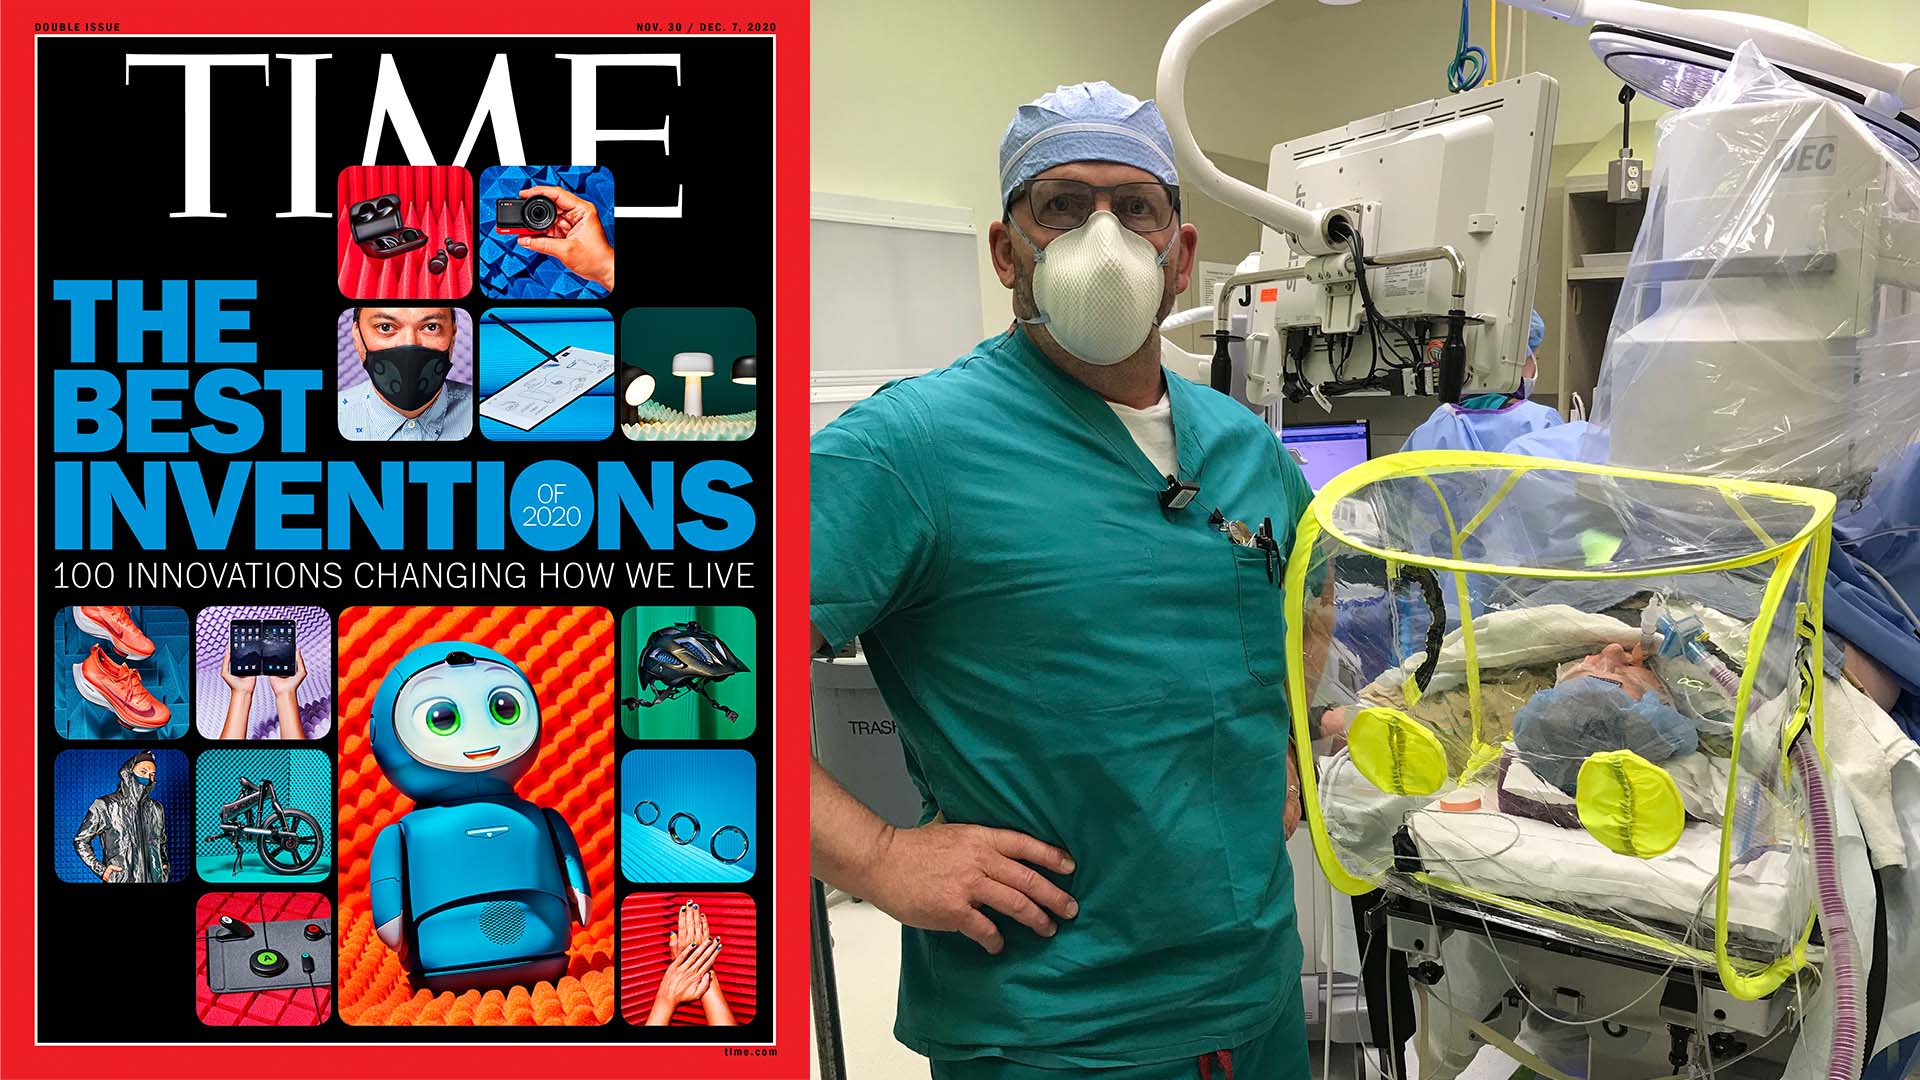 IntubationPod named one of TIME's 2020 Best Inventions